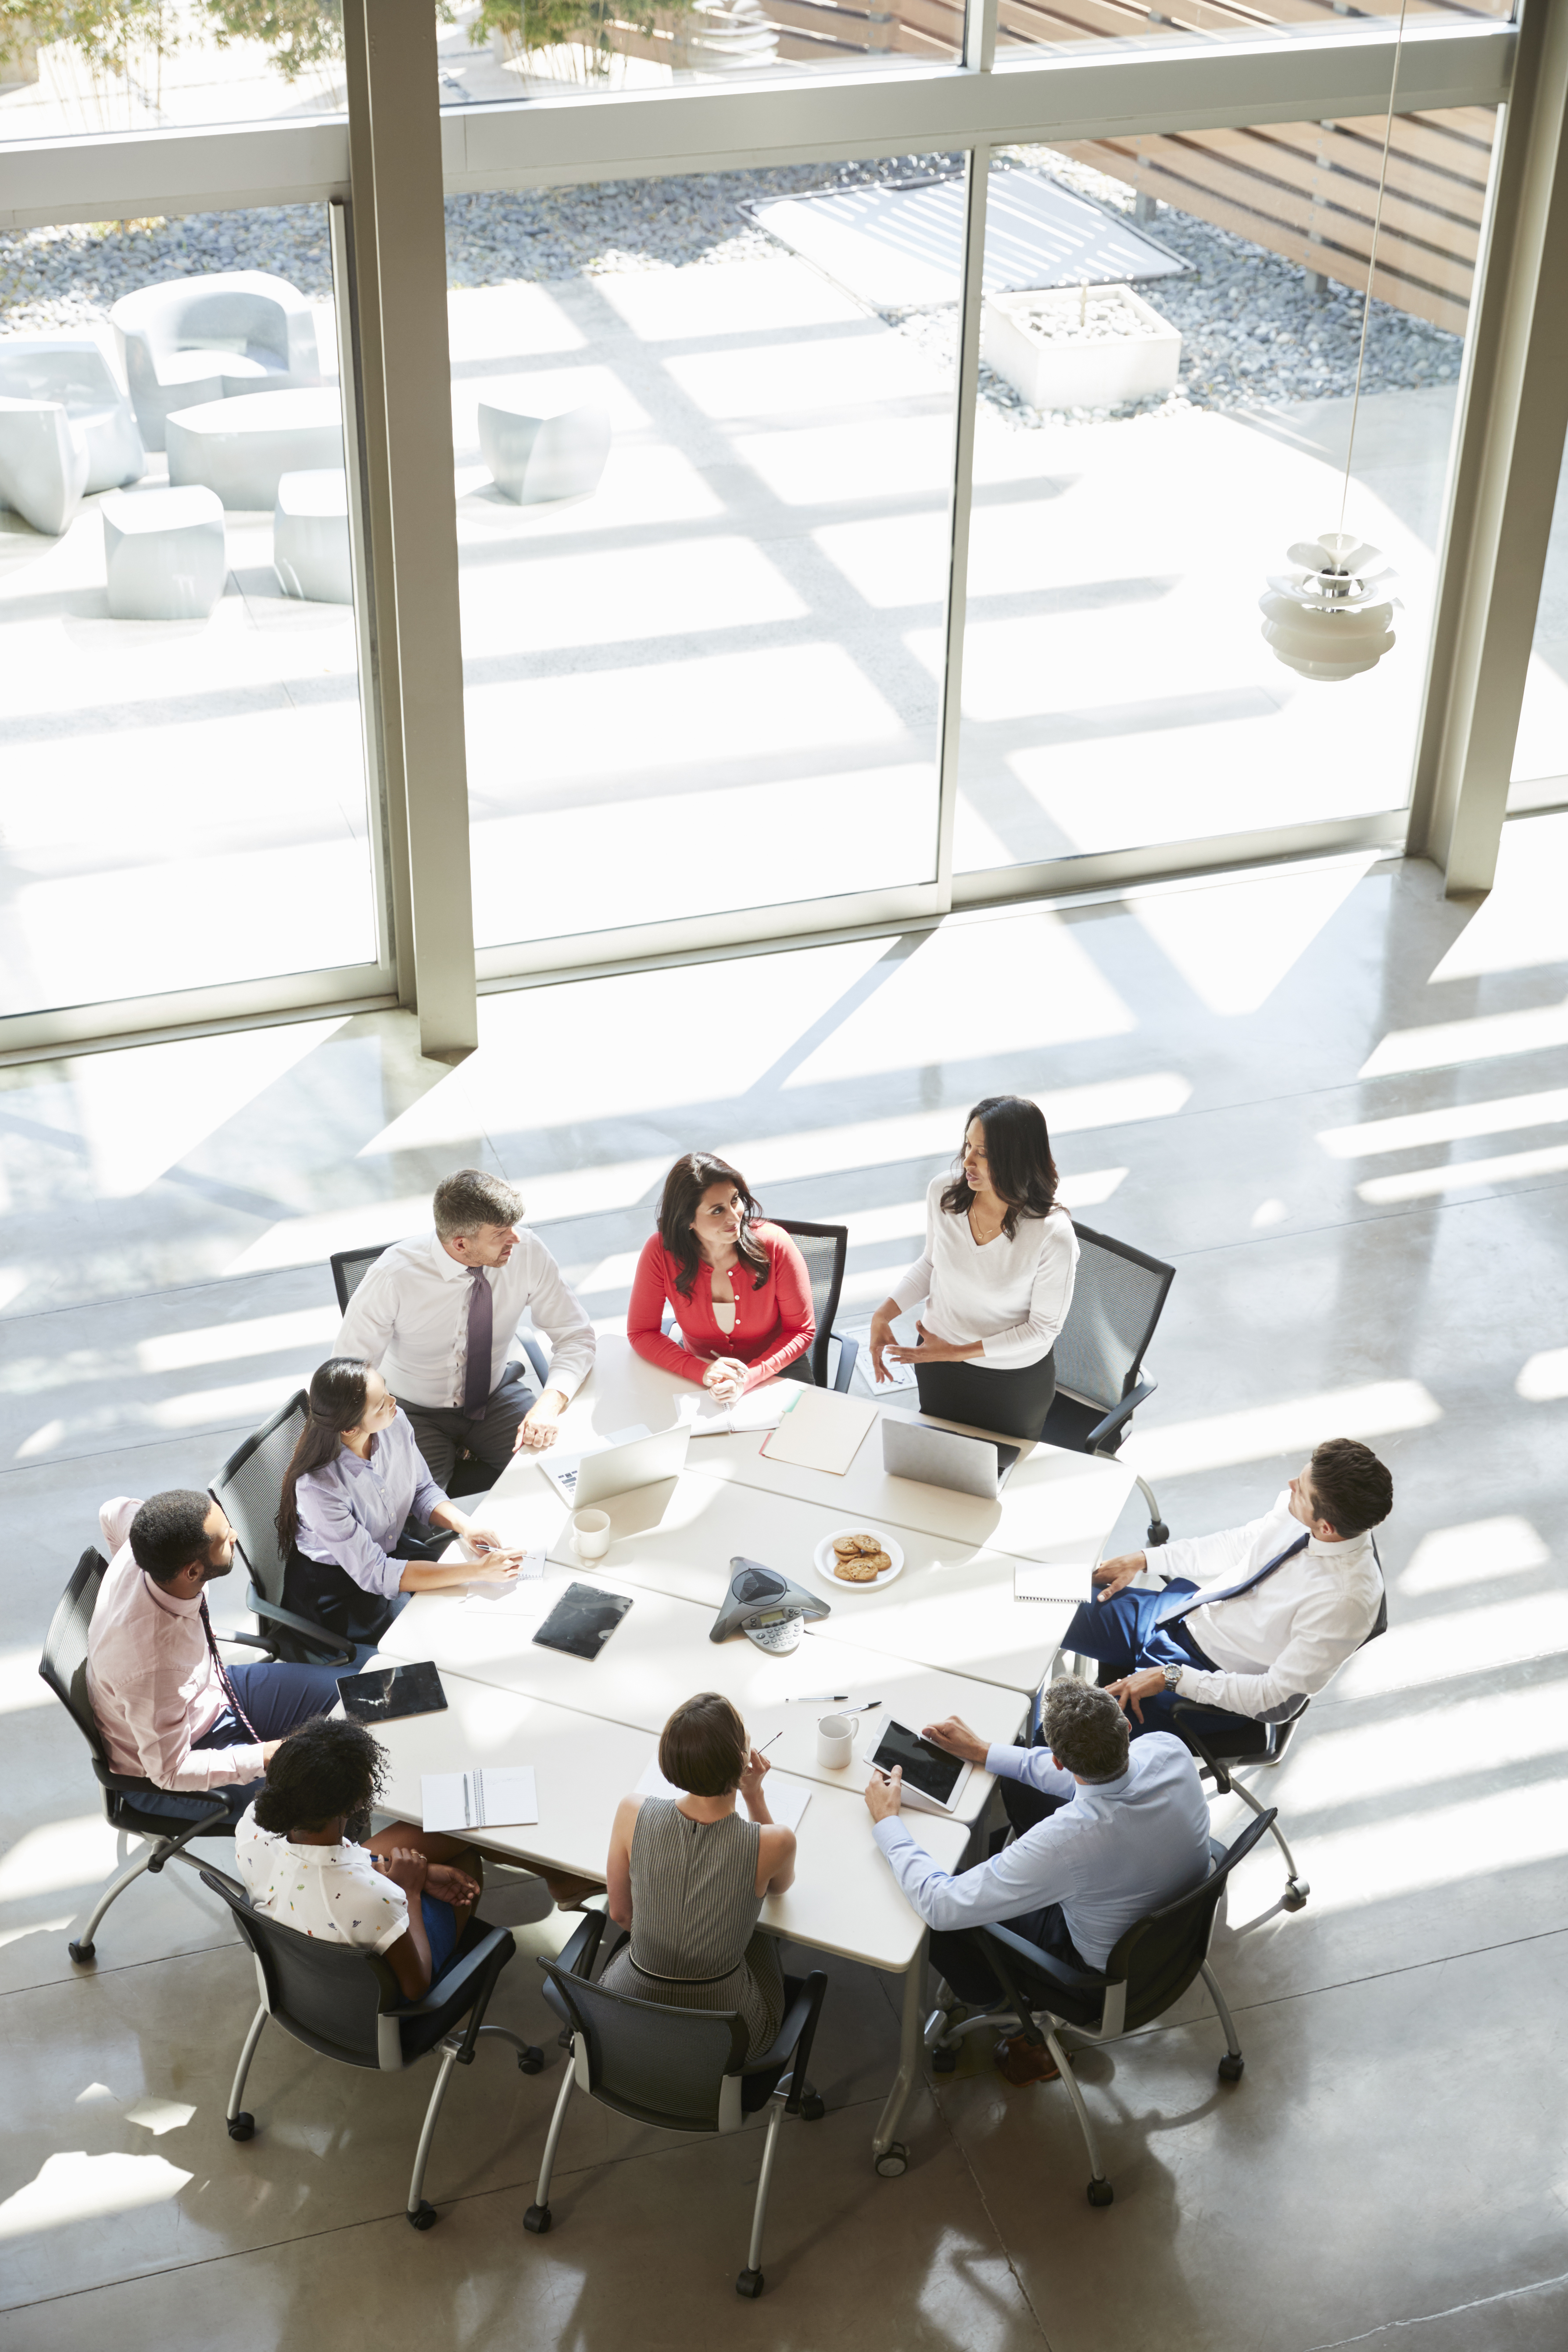 Businesswoman addressing meeting, elevated view, vertical